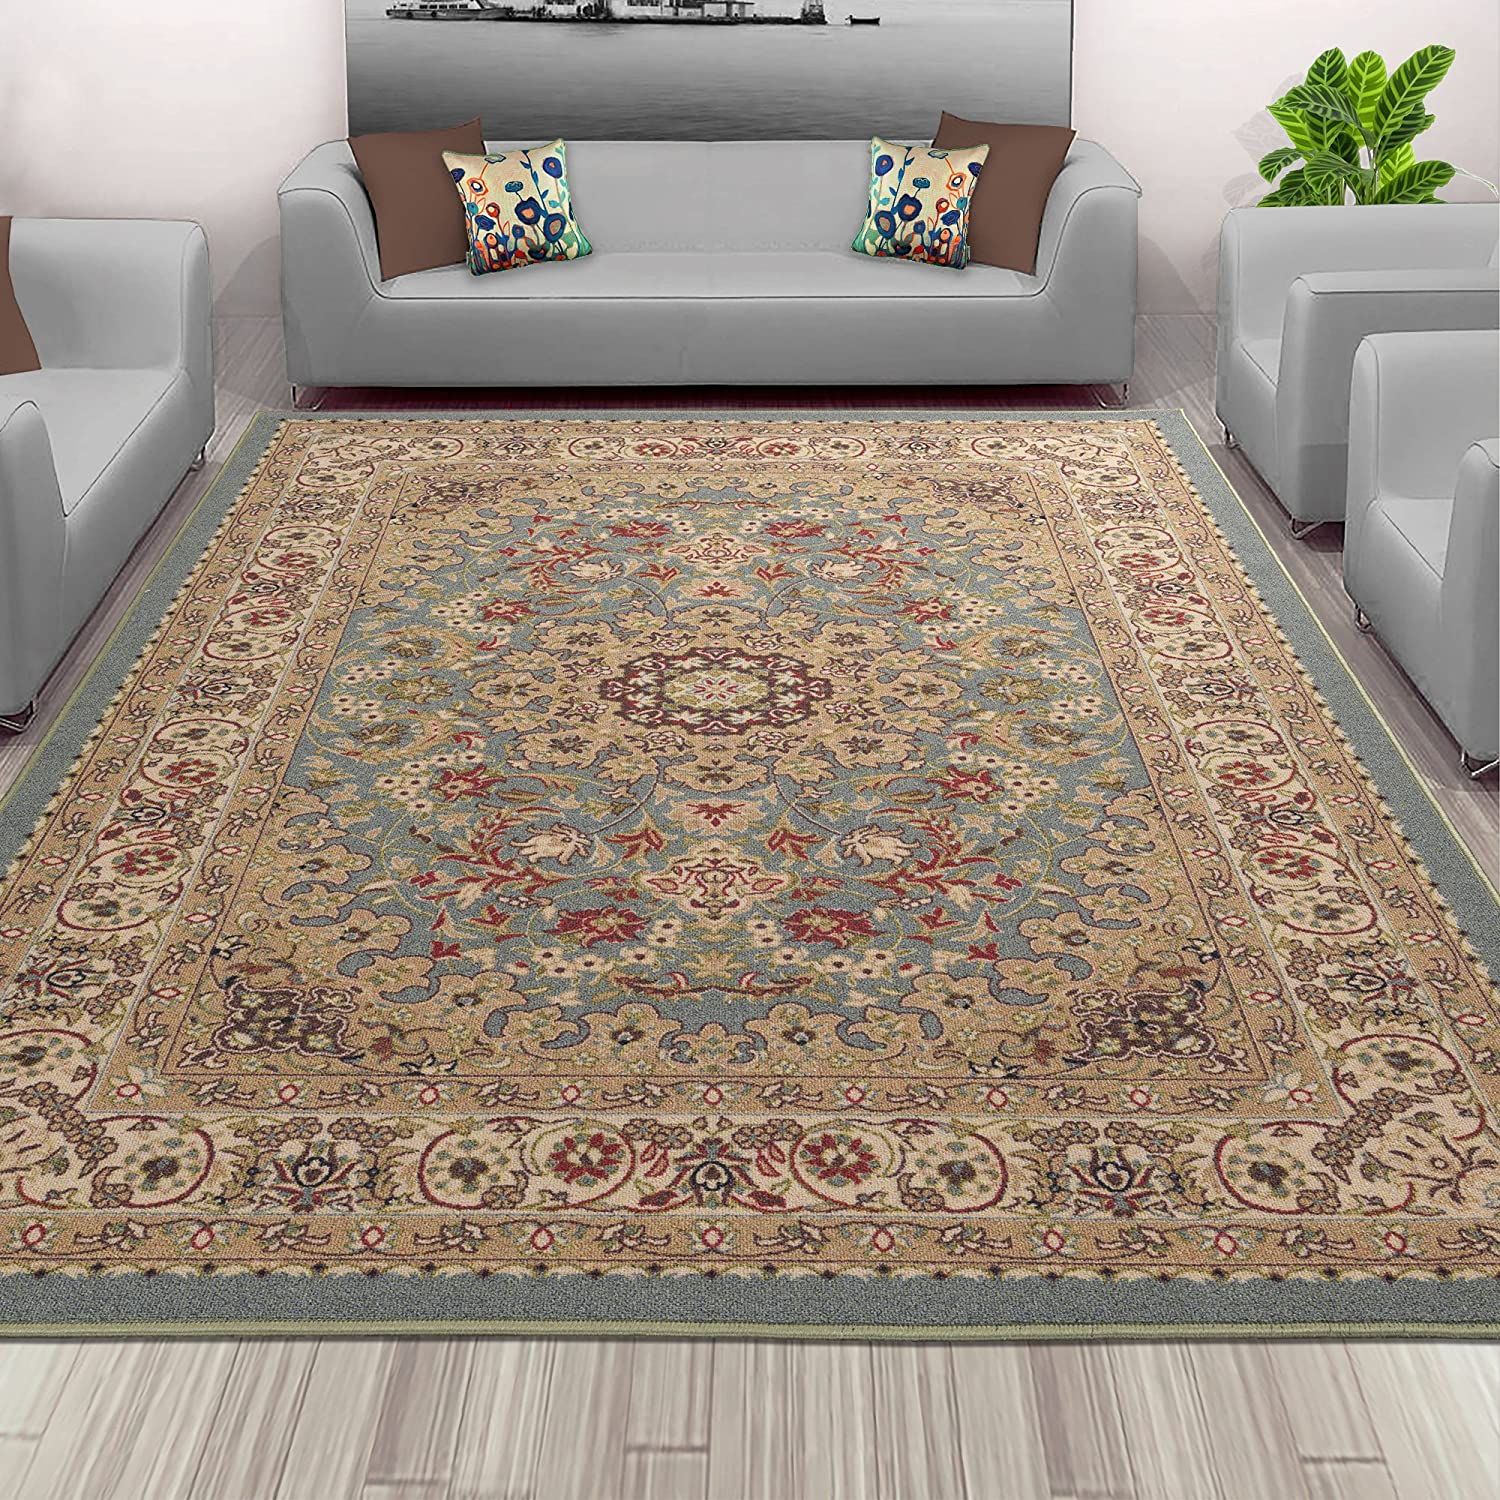 Sweet Home Stores Floral Design Non-Slip Rubber Backing Runner Rug, 2'2 X 6'0, Seafoam SH3096-2X6